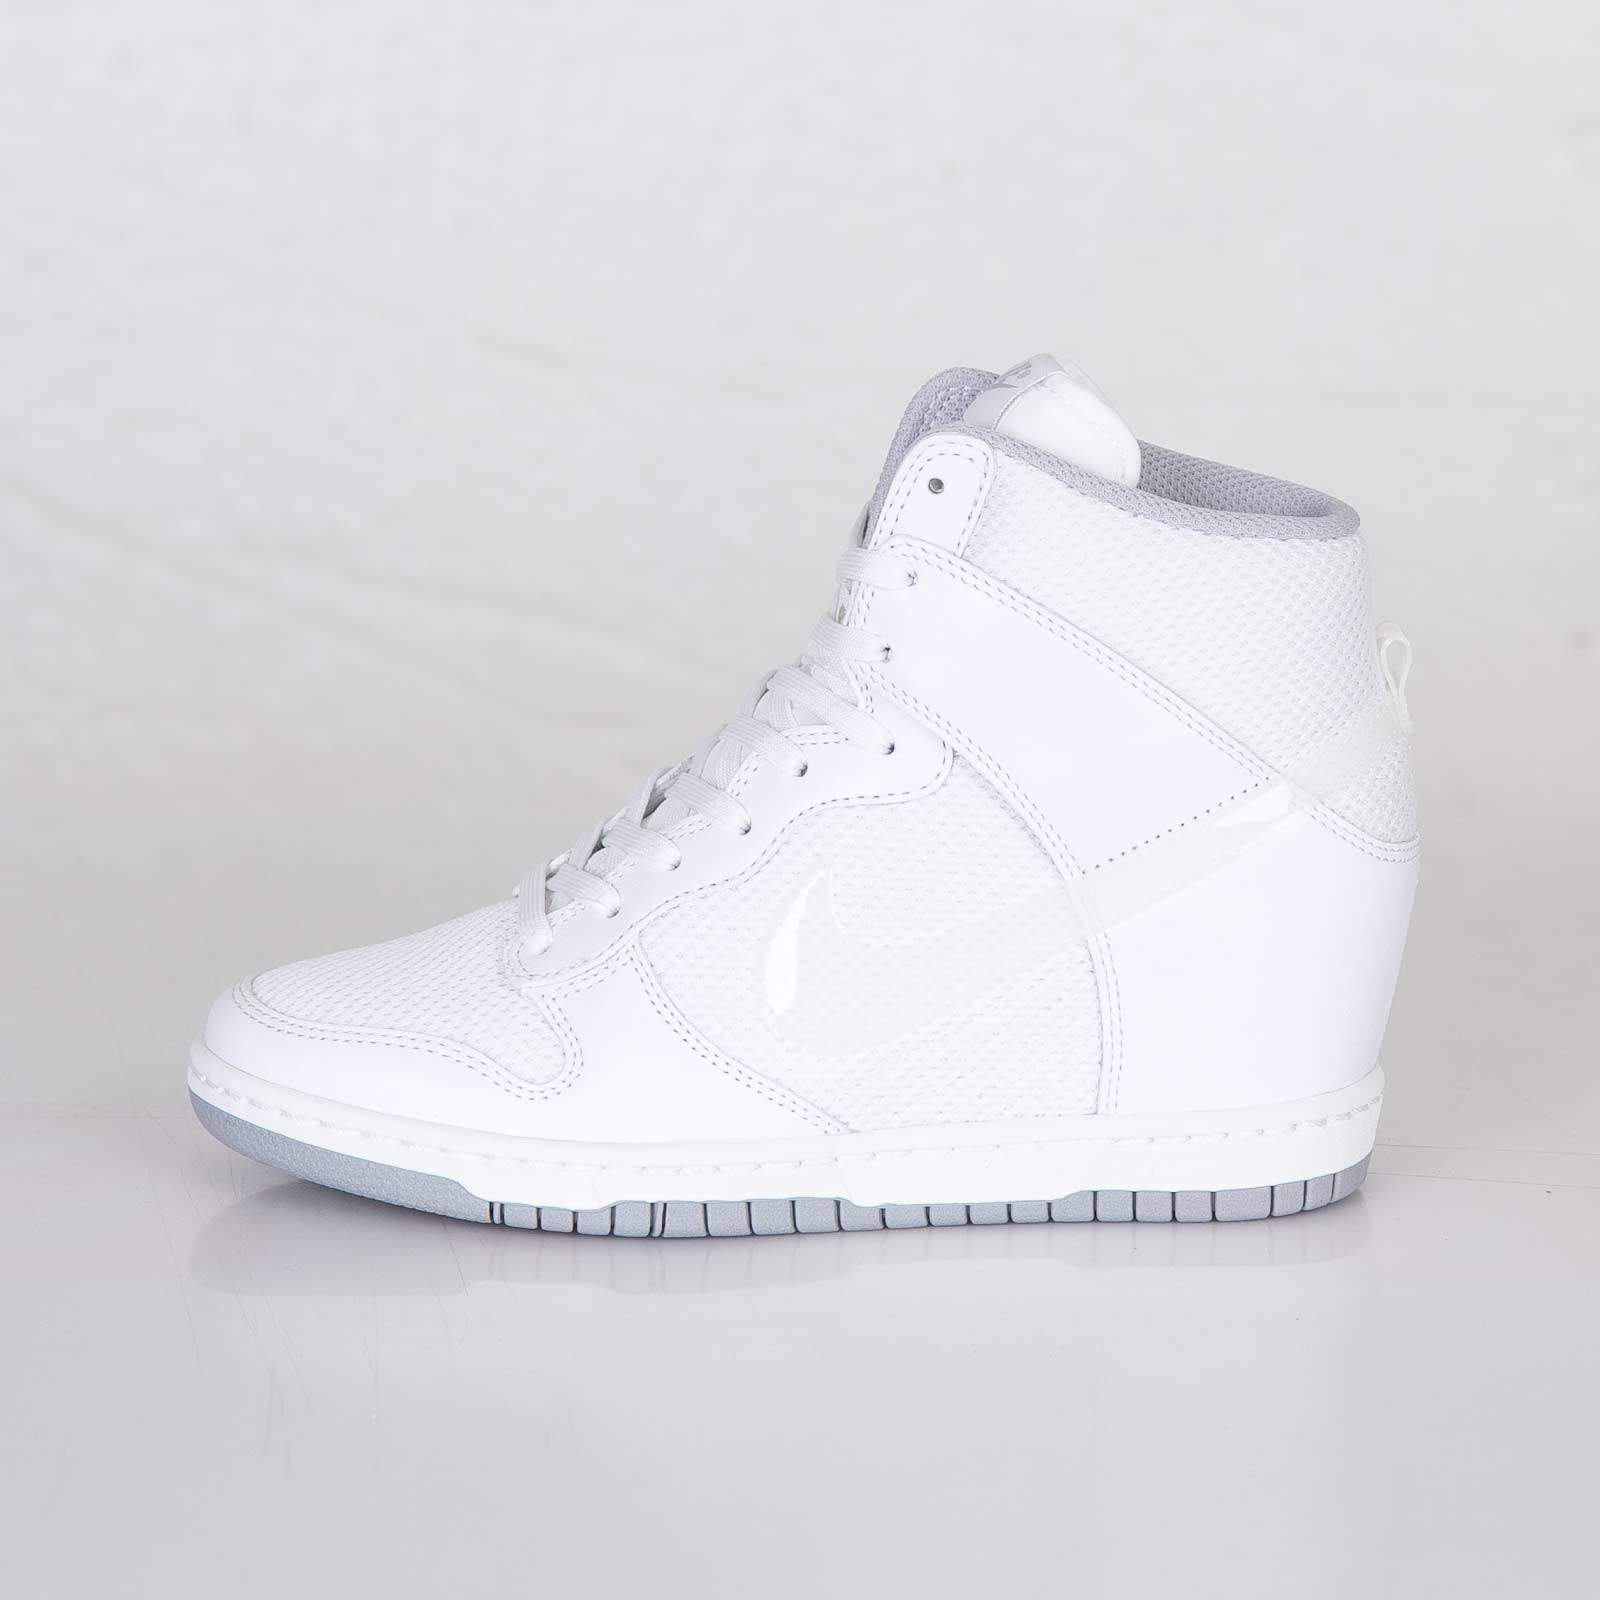 new products 3a6a5 6e38e Nike Wmns Dunk Sky Hi Essential - 644877-100 - Sneakersnstuff   sneakers    streetwear online since 1999